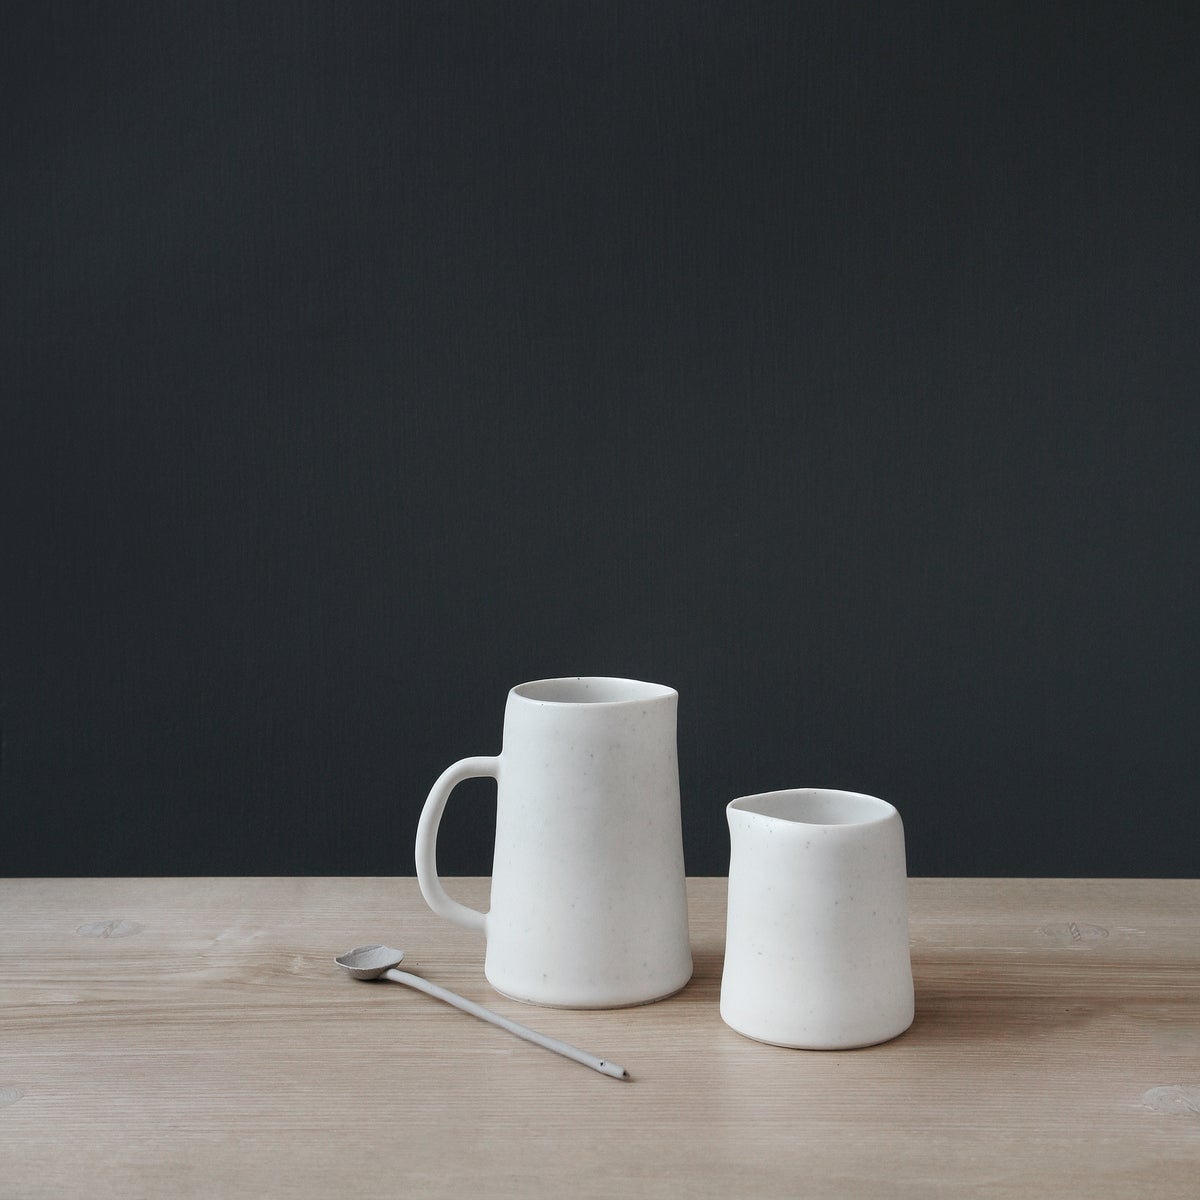 Image of Medium Cream Jug by Elaine Bolt